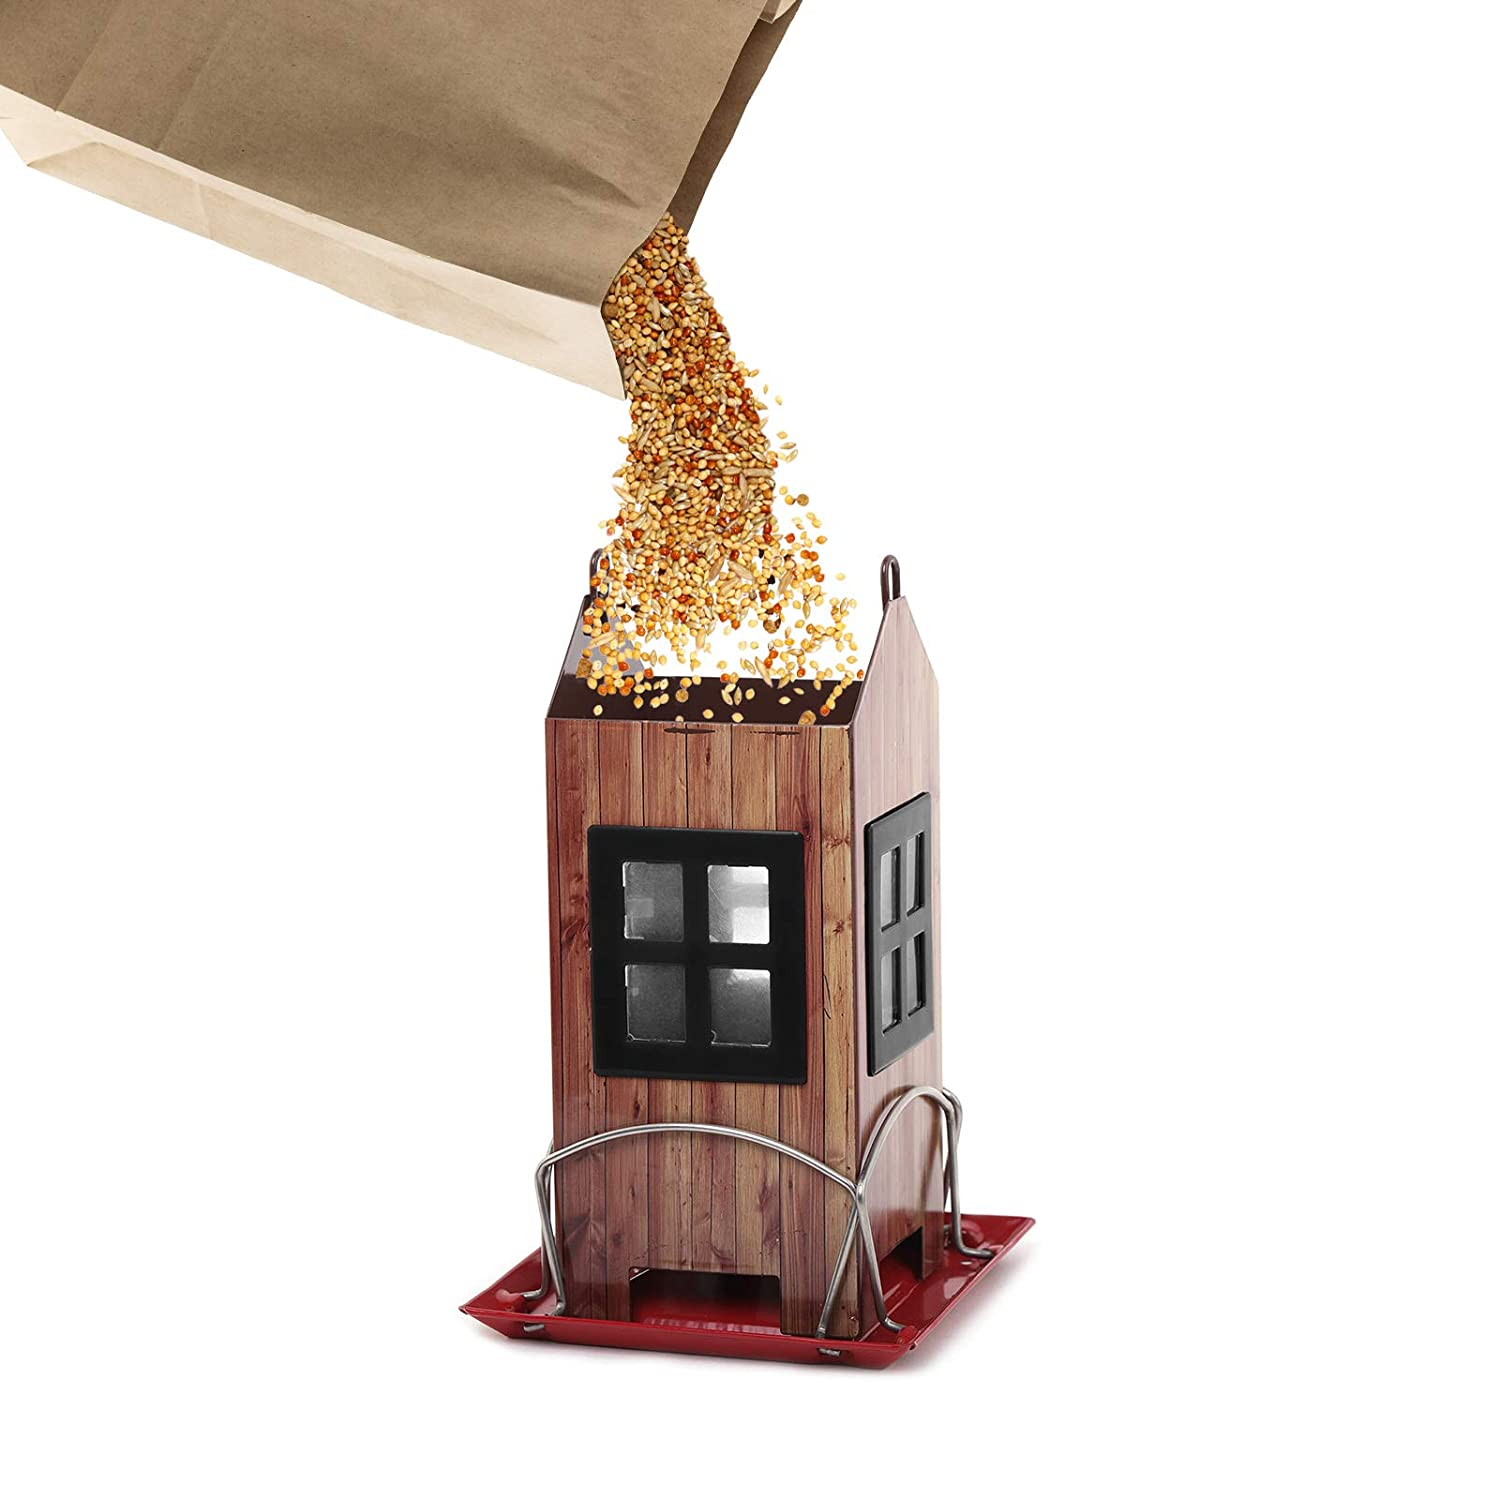 All-Metal Construction Kingsyard Bird Feeder House for Outside Hanging Extra Rustproof S Hook Built-in Drainage Holes to Keep Bird Seed Dry and Fresh